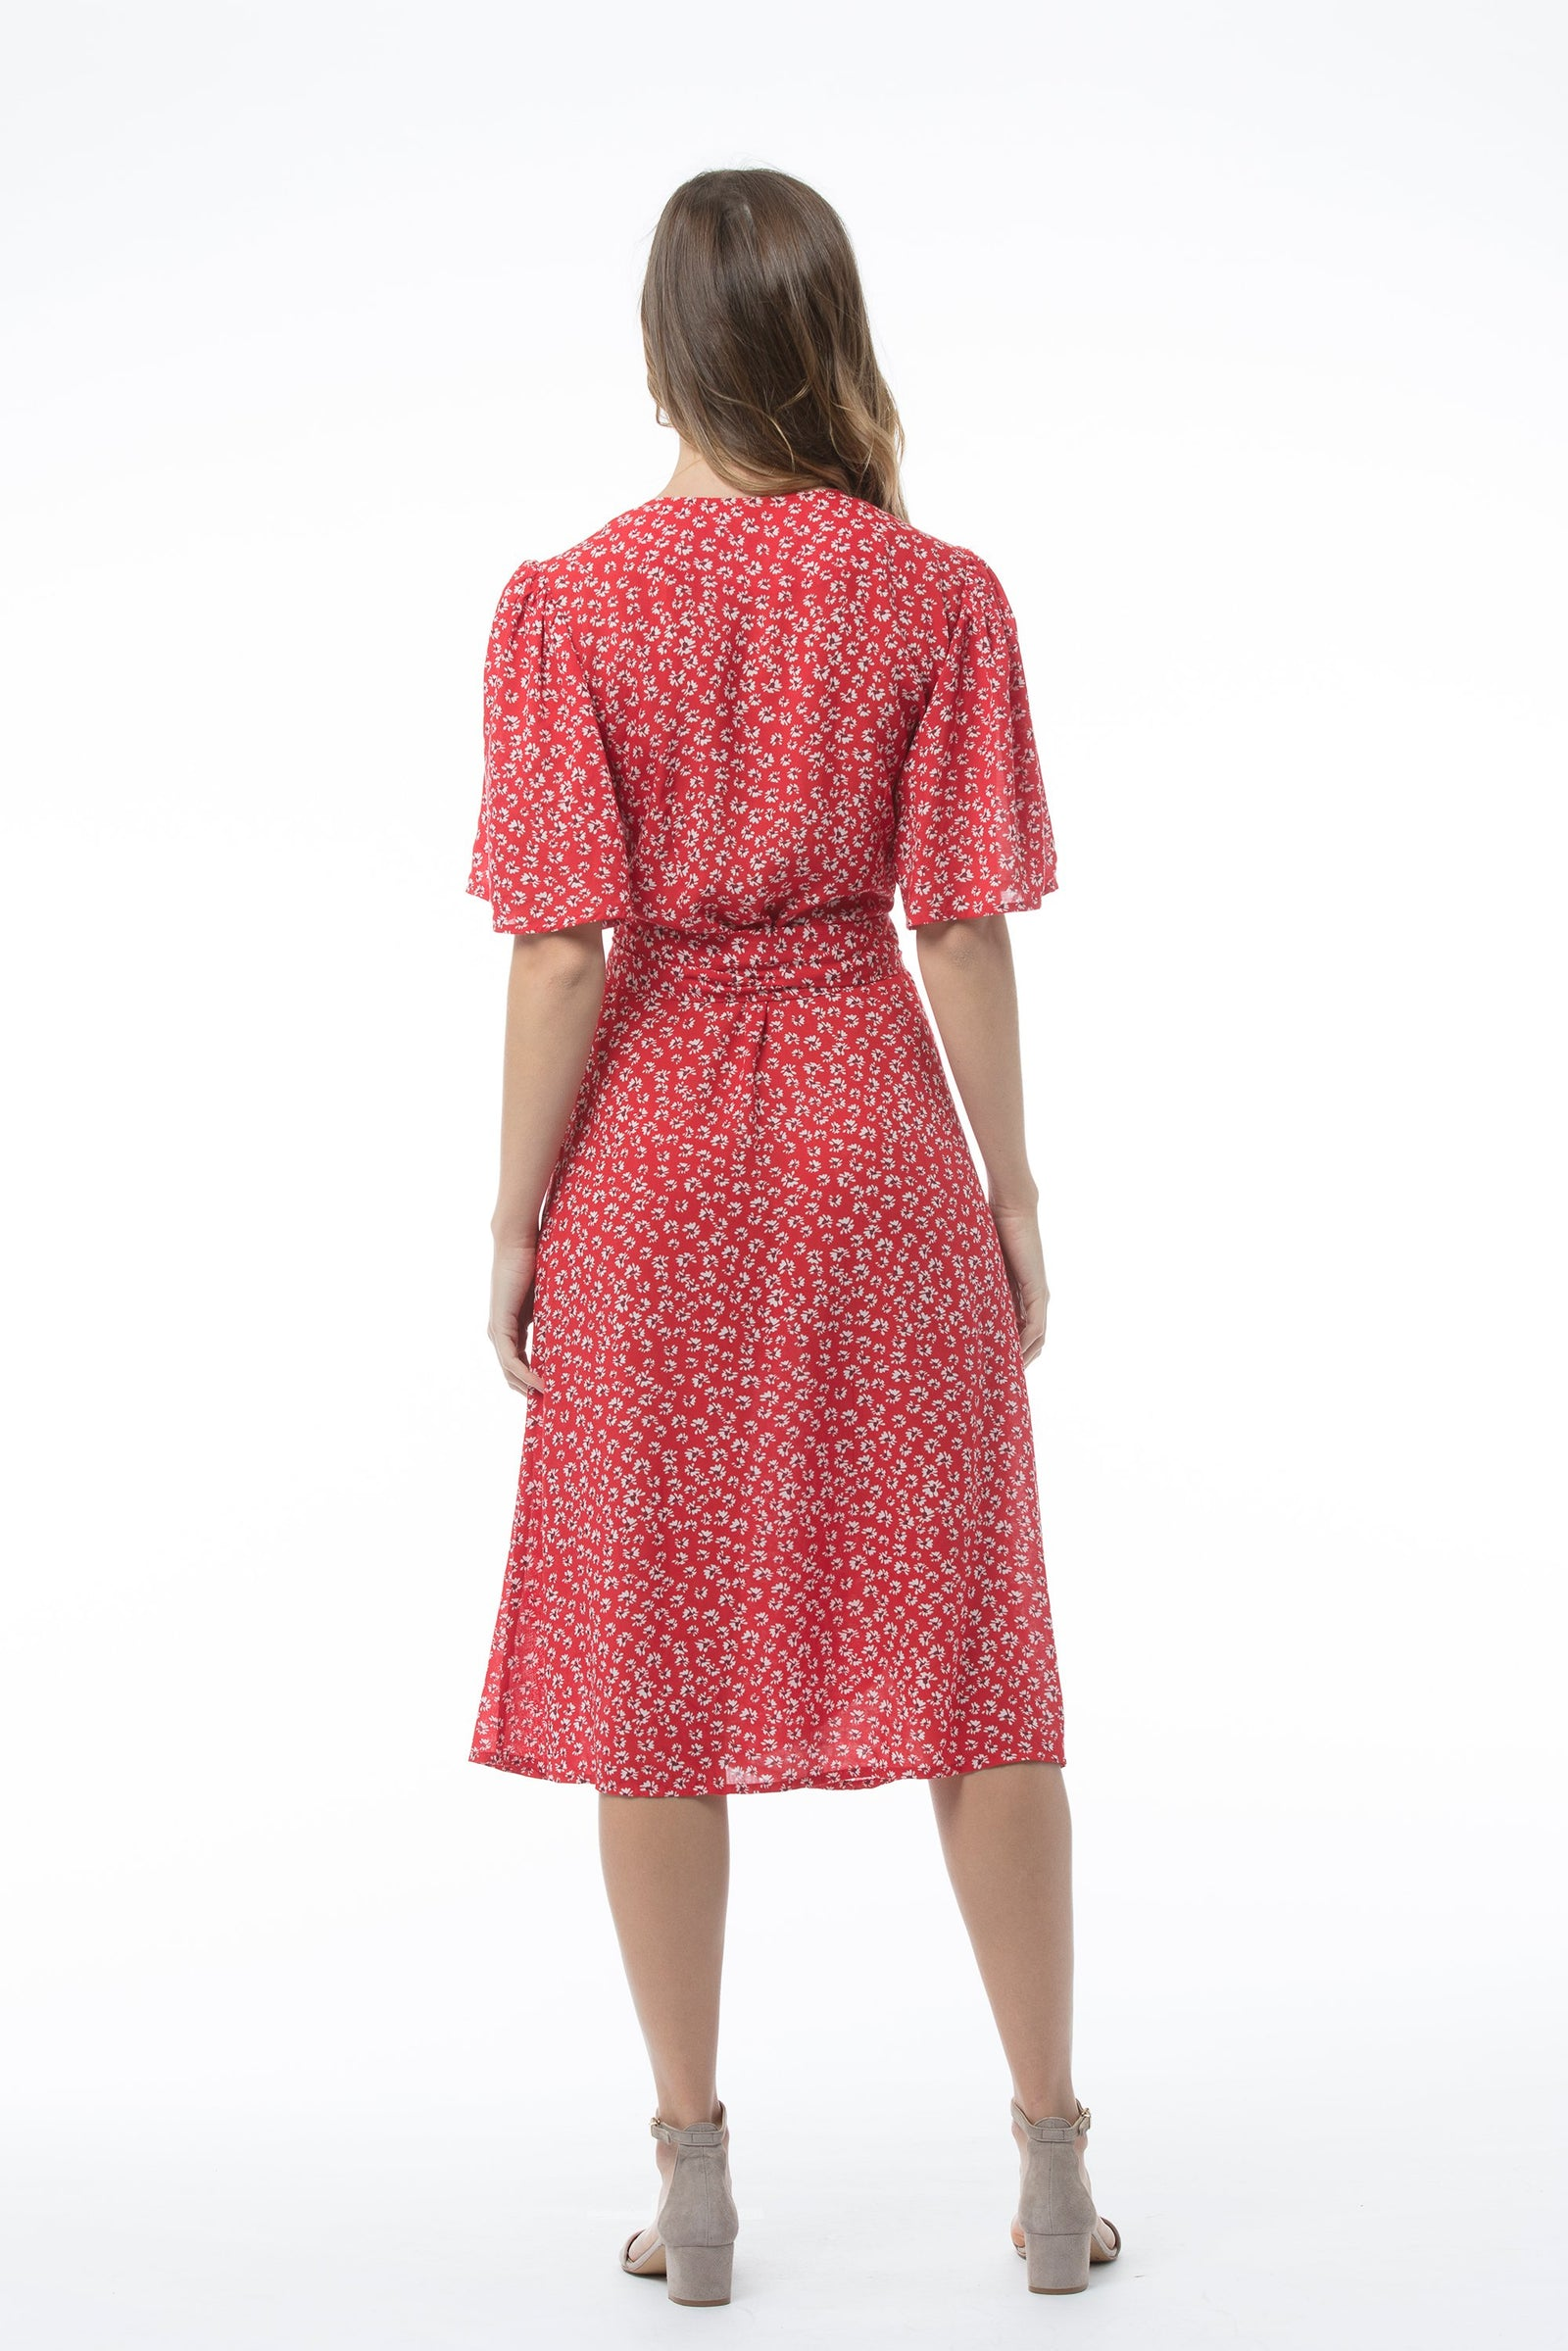 MARTHA Dress - Red Print